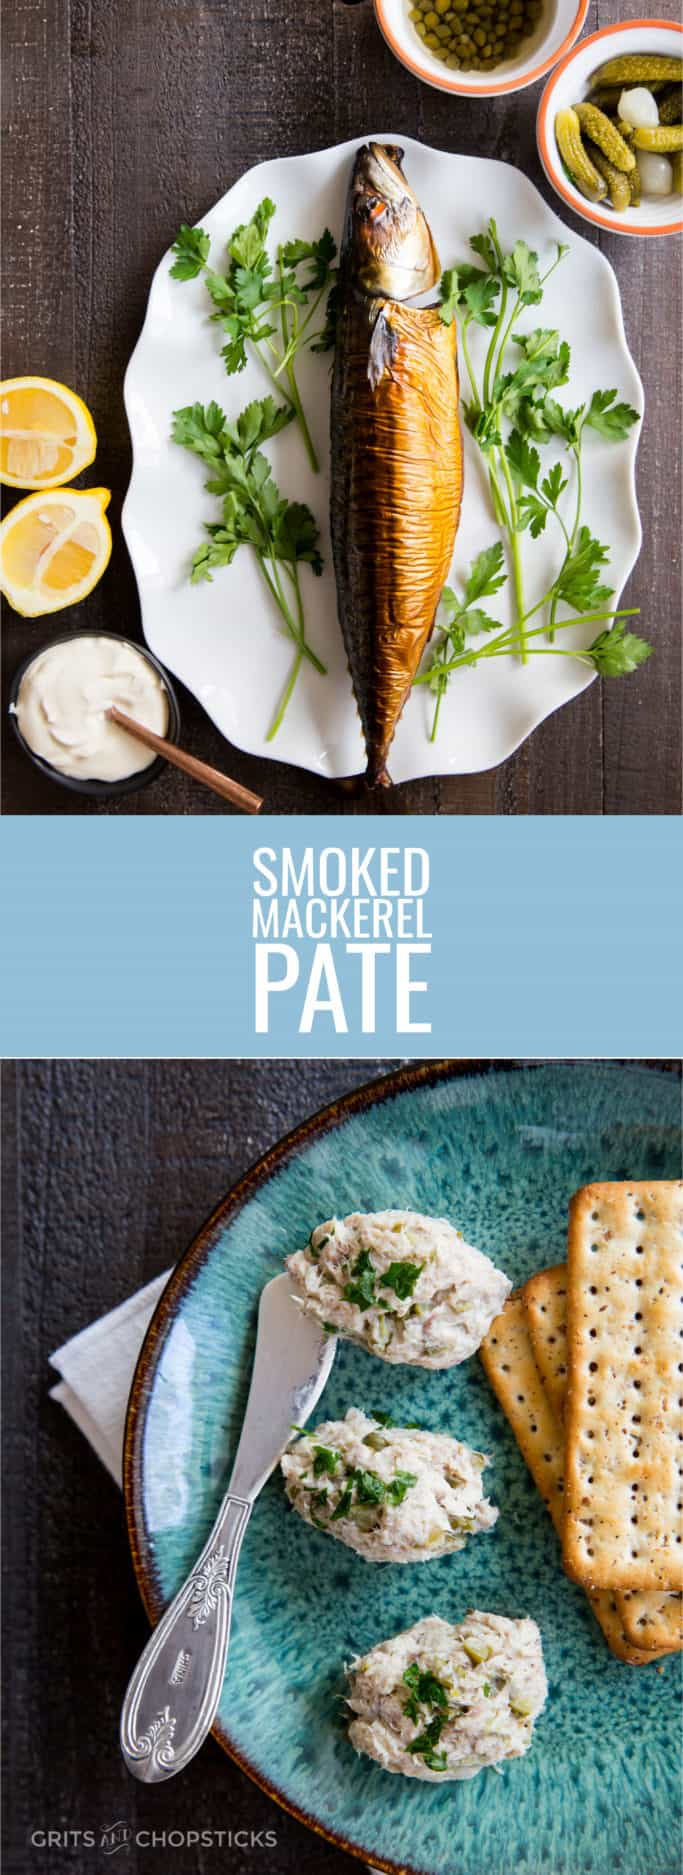 This smoked mackerel pate is weirdly addictive and an interesting, new flavor to try -- plus, it's easy to make!